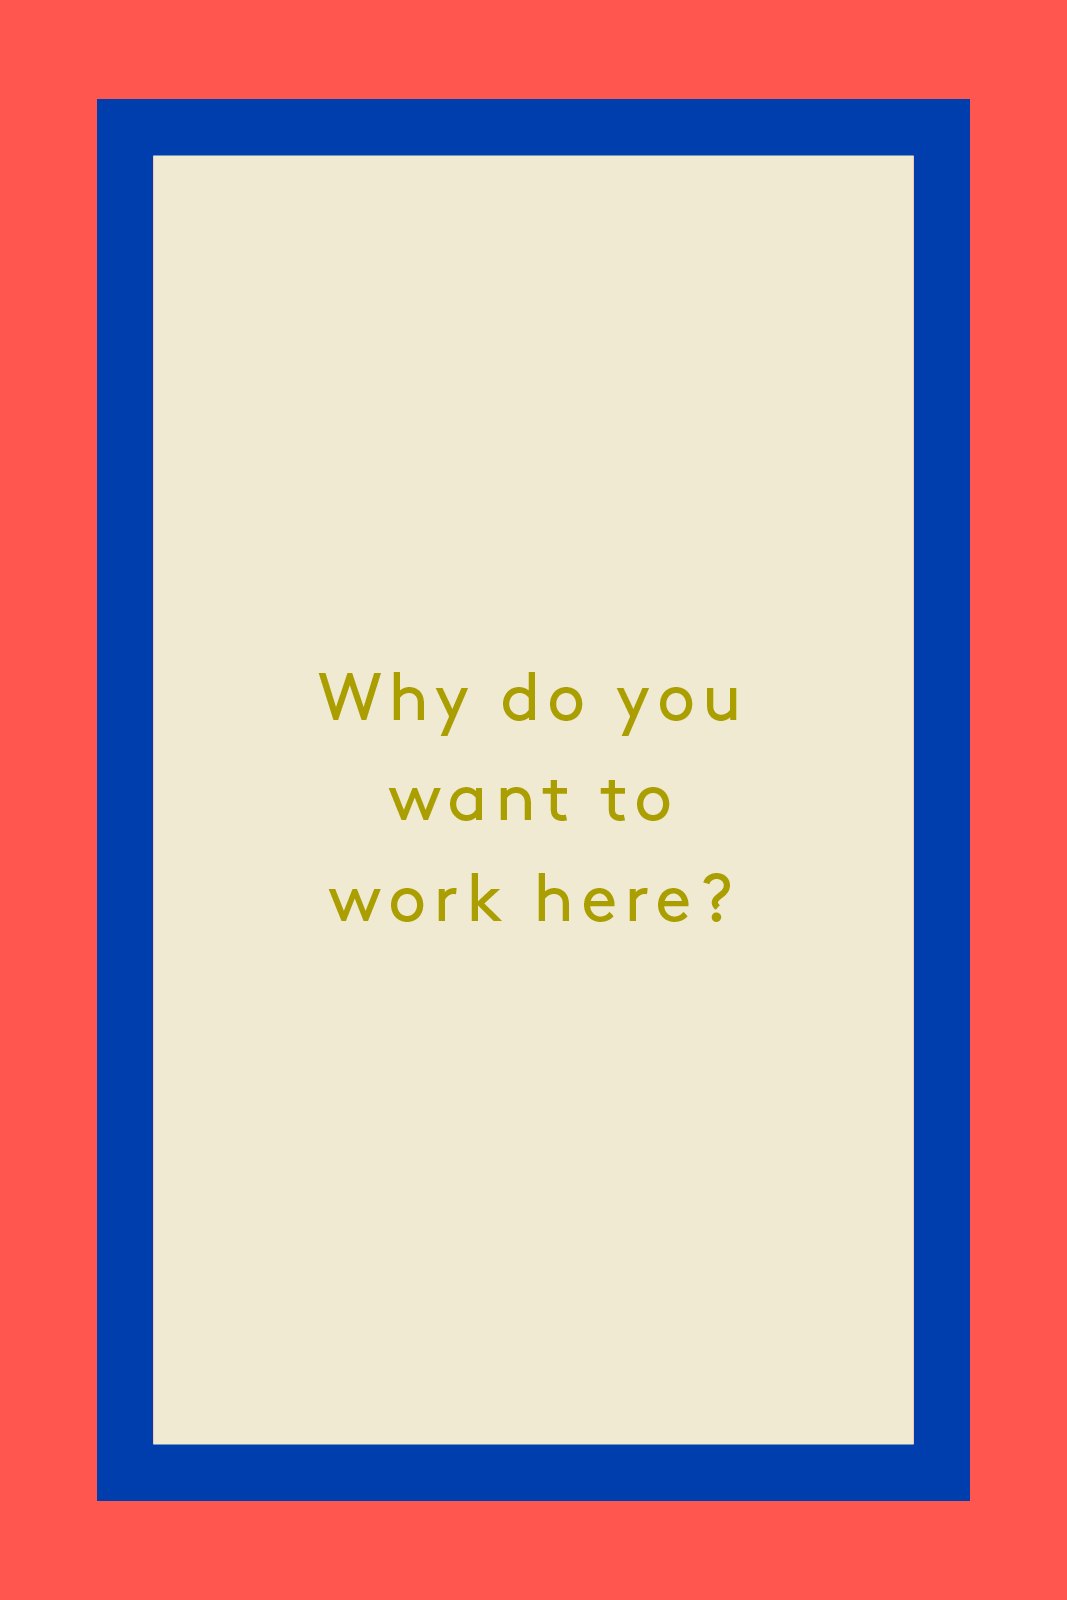 job interview questions and answers interviewing tips illustrated by abbie winters your answer to this question should